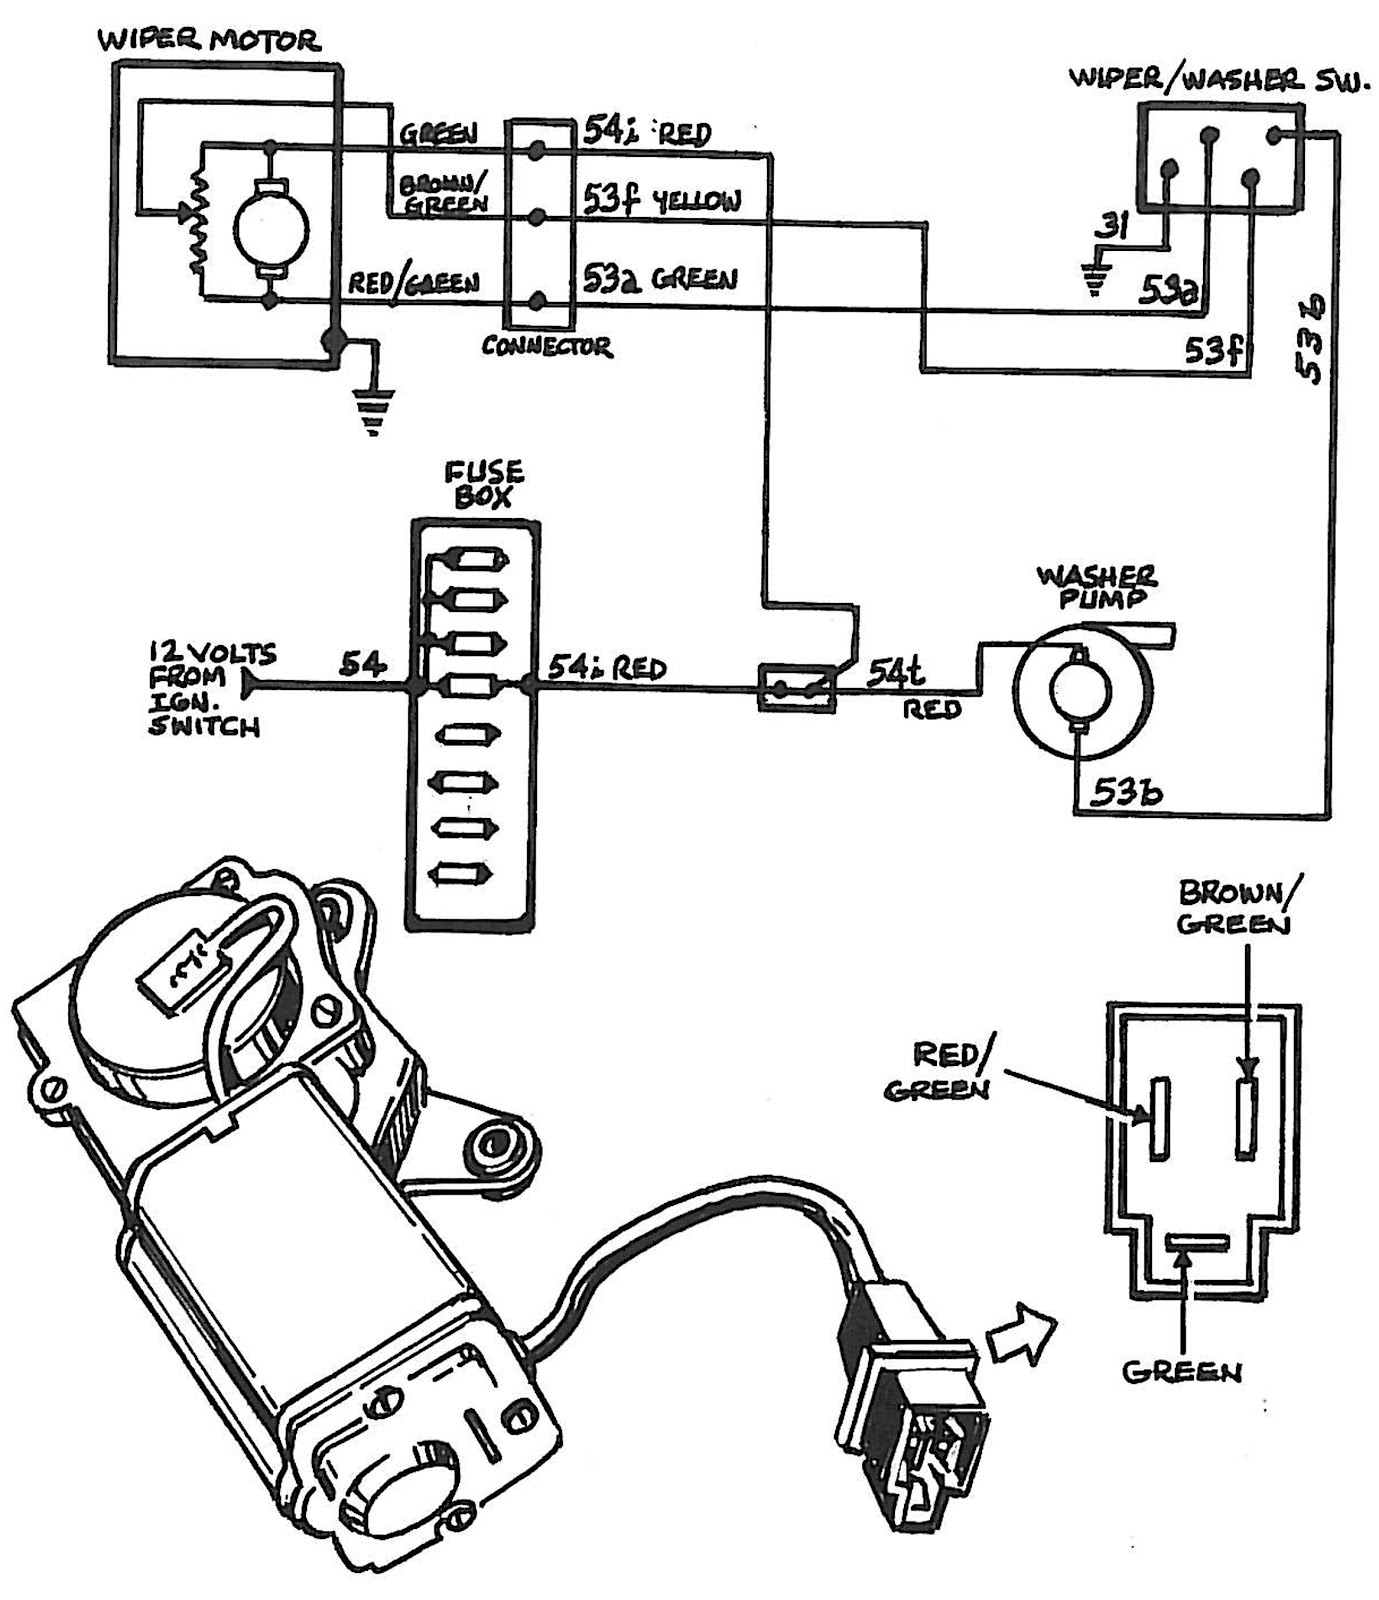 Schematics i also Seabiscuit68 tripod additionally Hose Routing 78 Cj7 7190 additionally Ford Thunderbird 1958 Windows Wiring Diagram likewise Kodiak Yfm400fwa. on 1966 mustang headlight wiring diagram